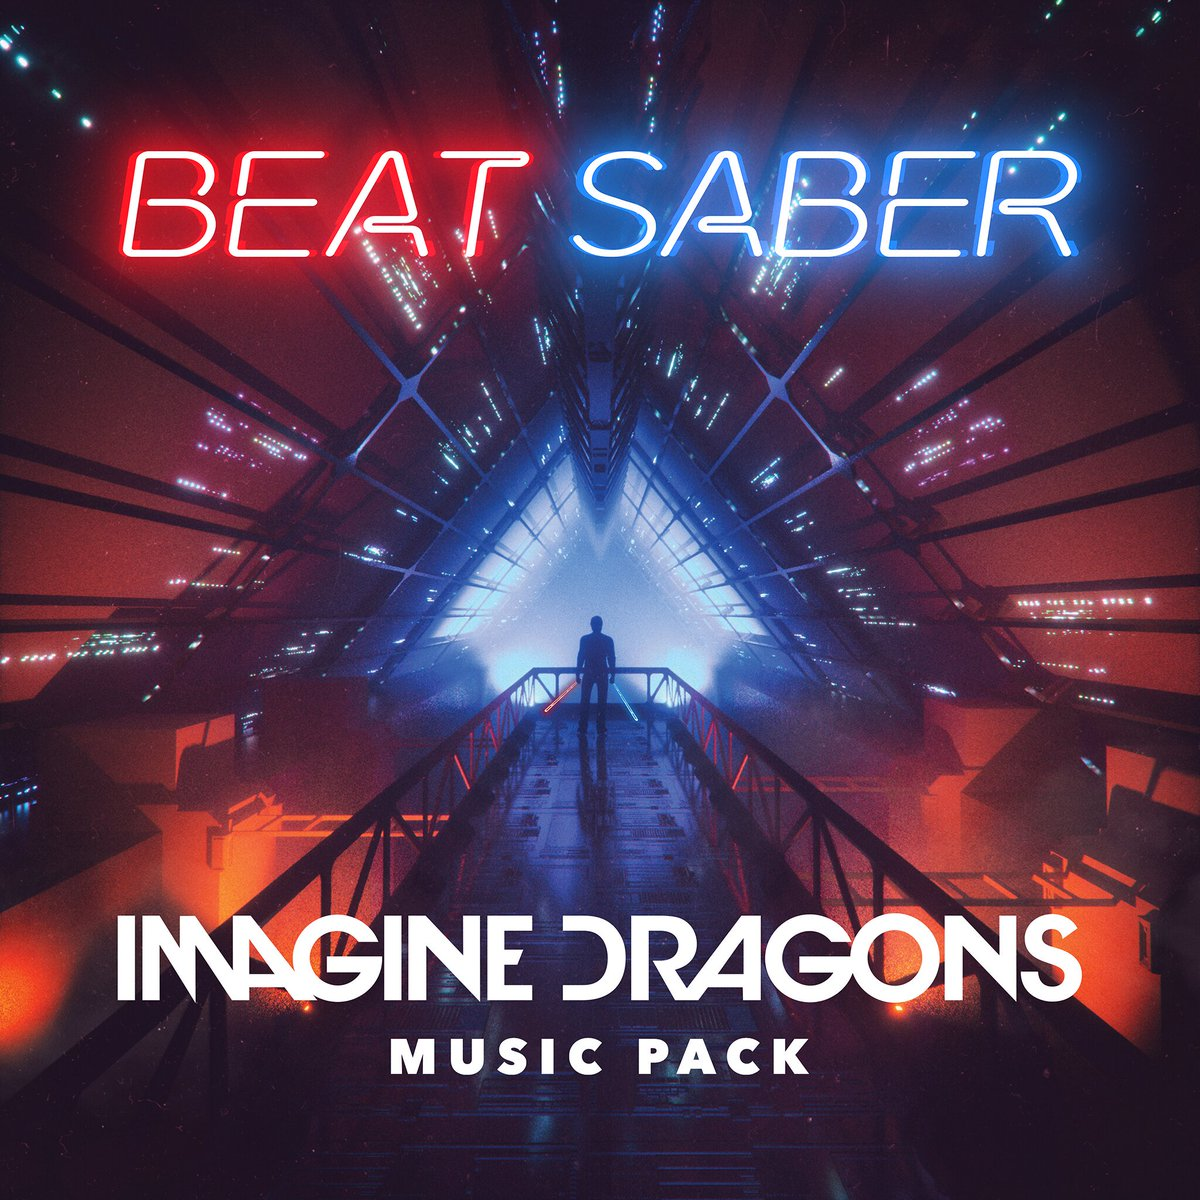 It's time. @BeatSaber releases a new music pack today, featuring hits from world-renowned pop/rock band @Imaginedragons: https://play.st/2WAmPAC  #PSVR